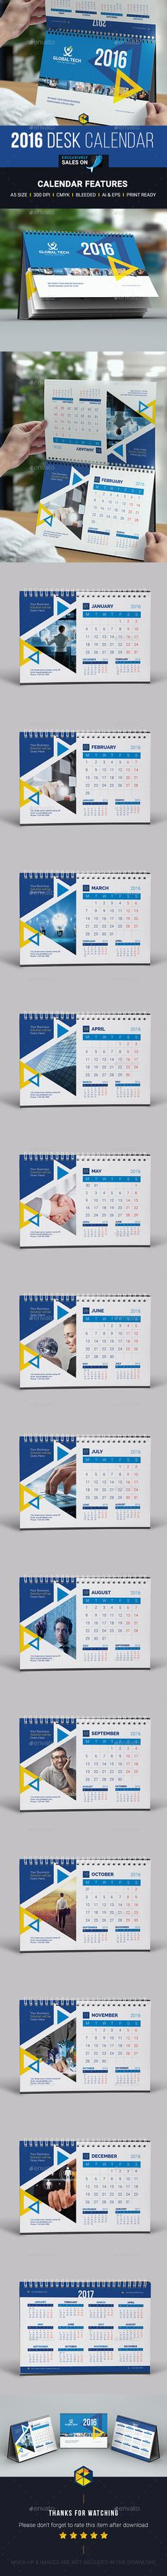 Desk Calendar 2016 Template Vector EPS, AI #design Download: http://graphicriver.net/item/desk-calendar-2016/13977218?ref=ksioks